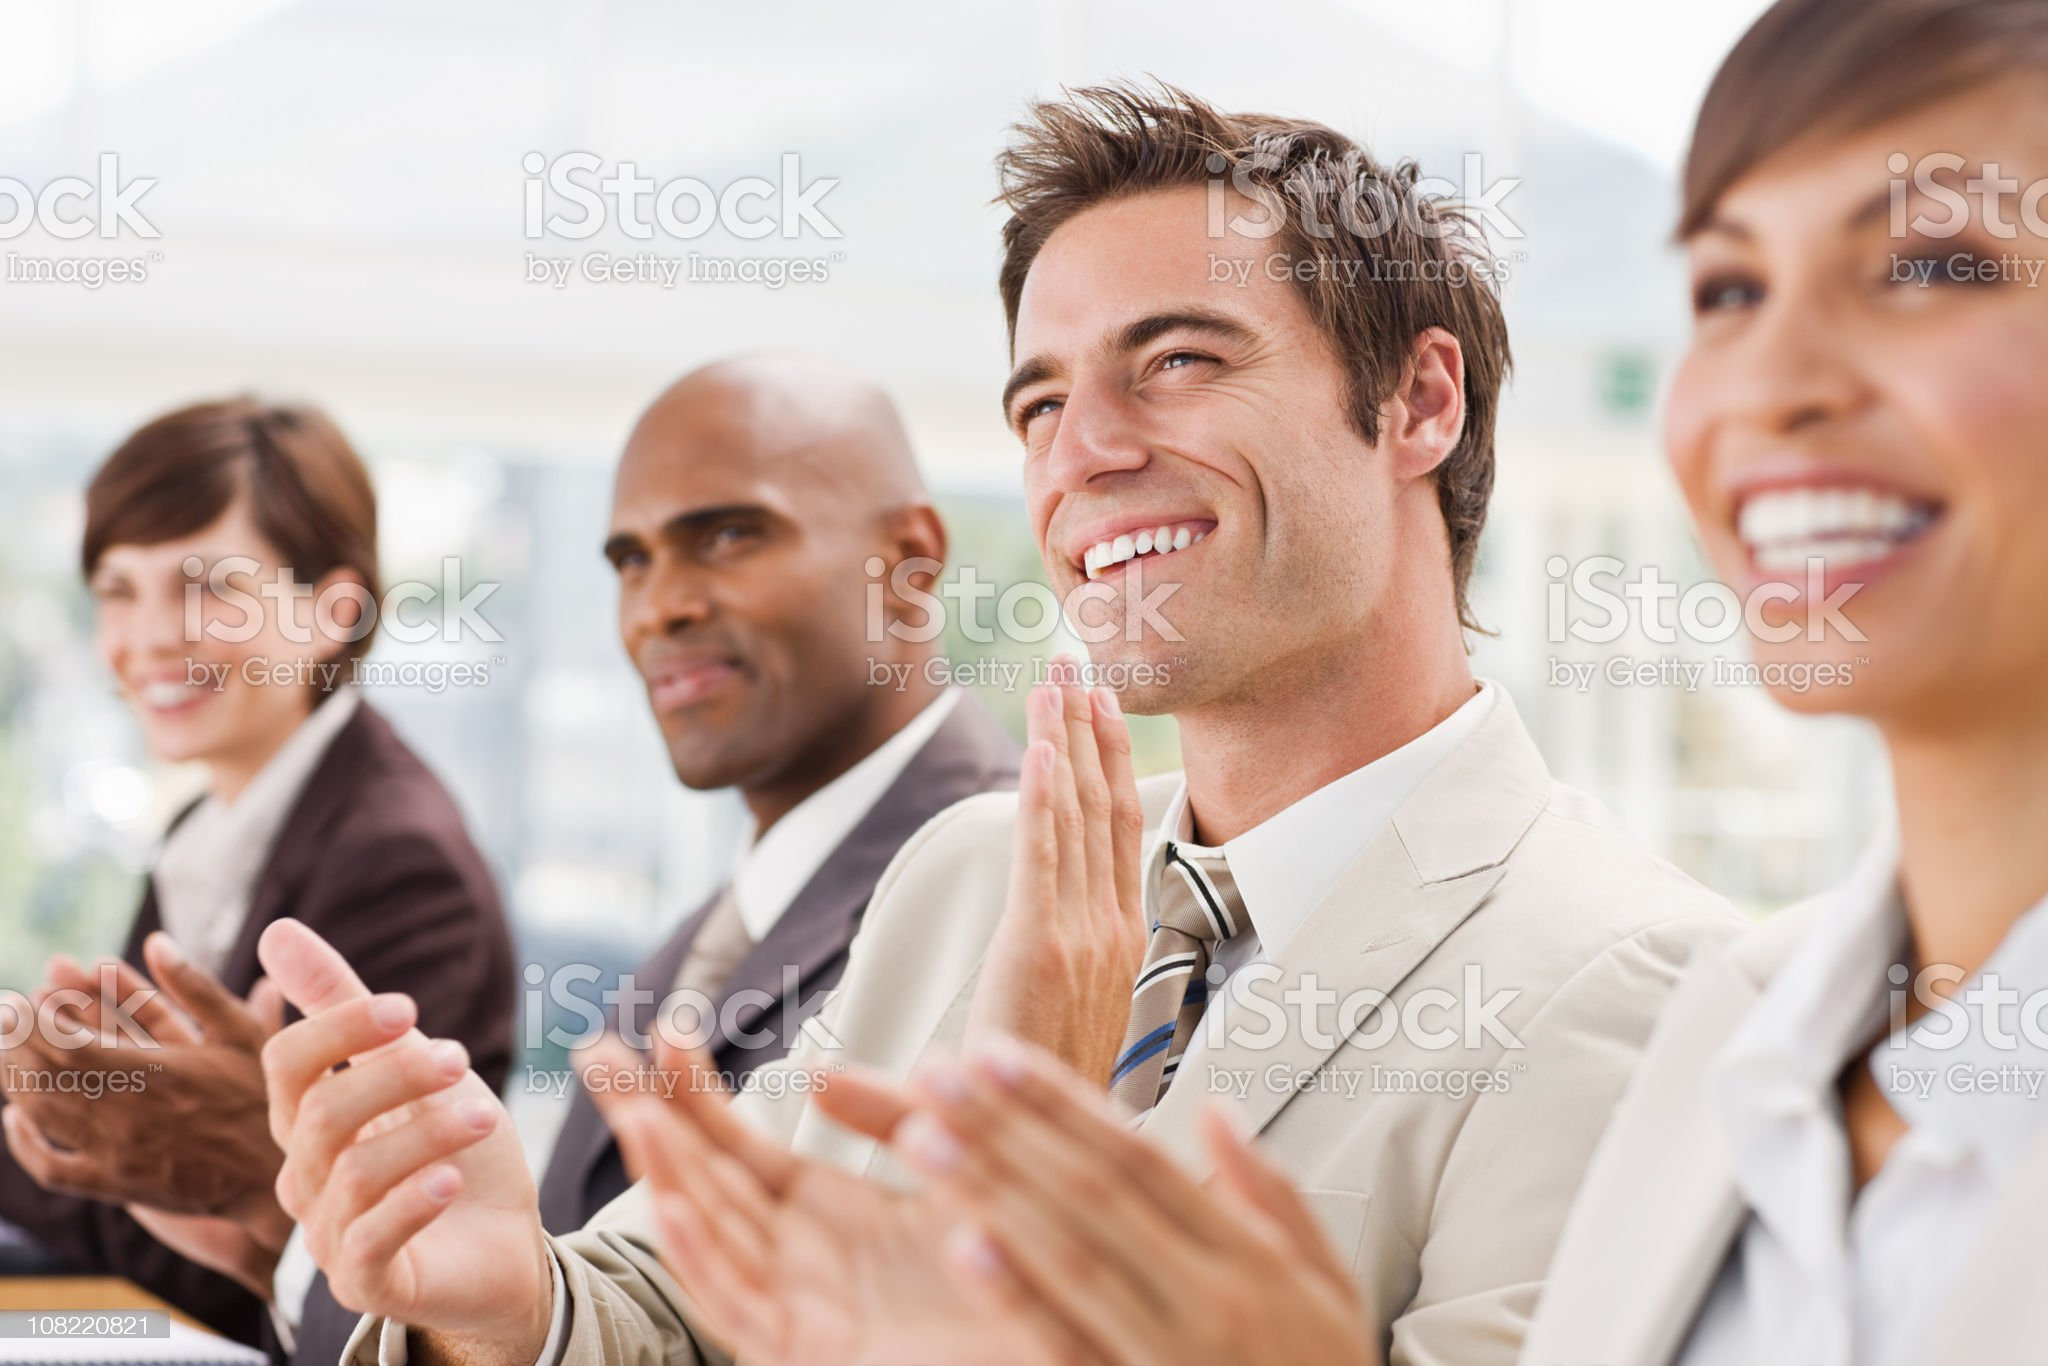 Happy businesspeople clapping hands royalty-free stock photo